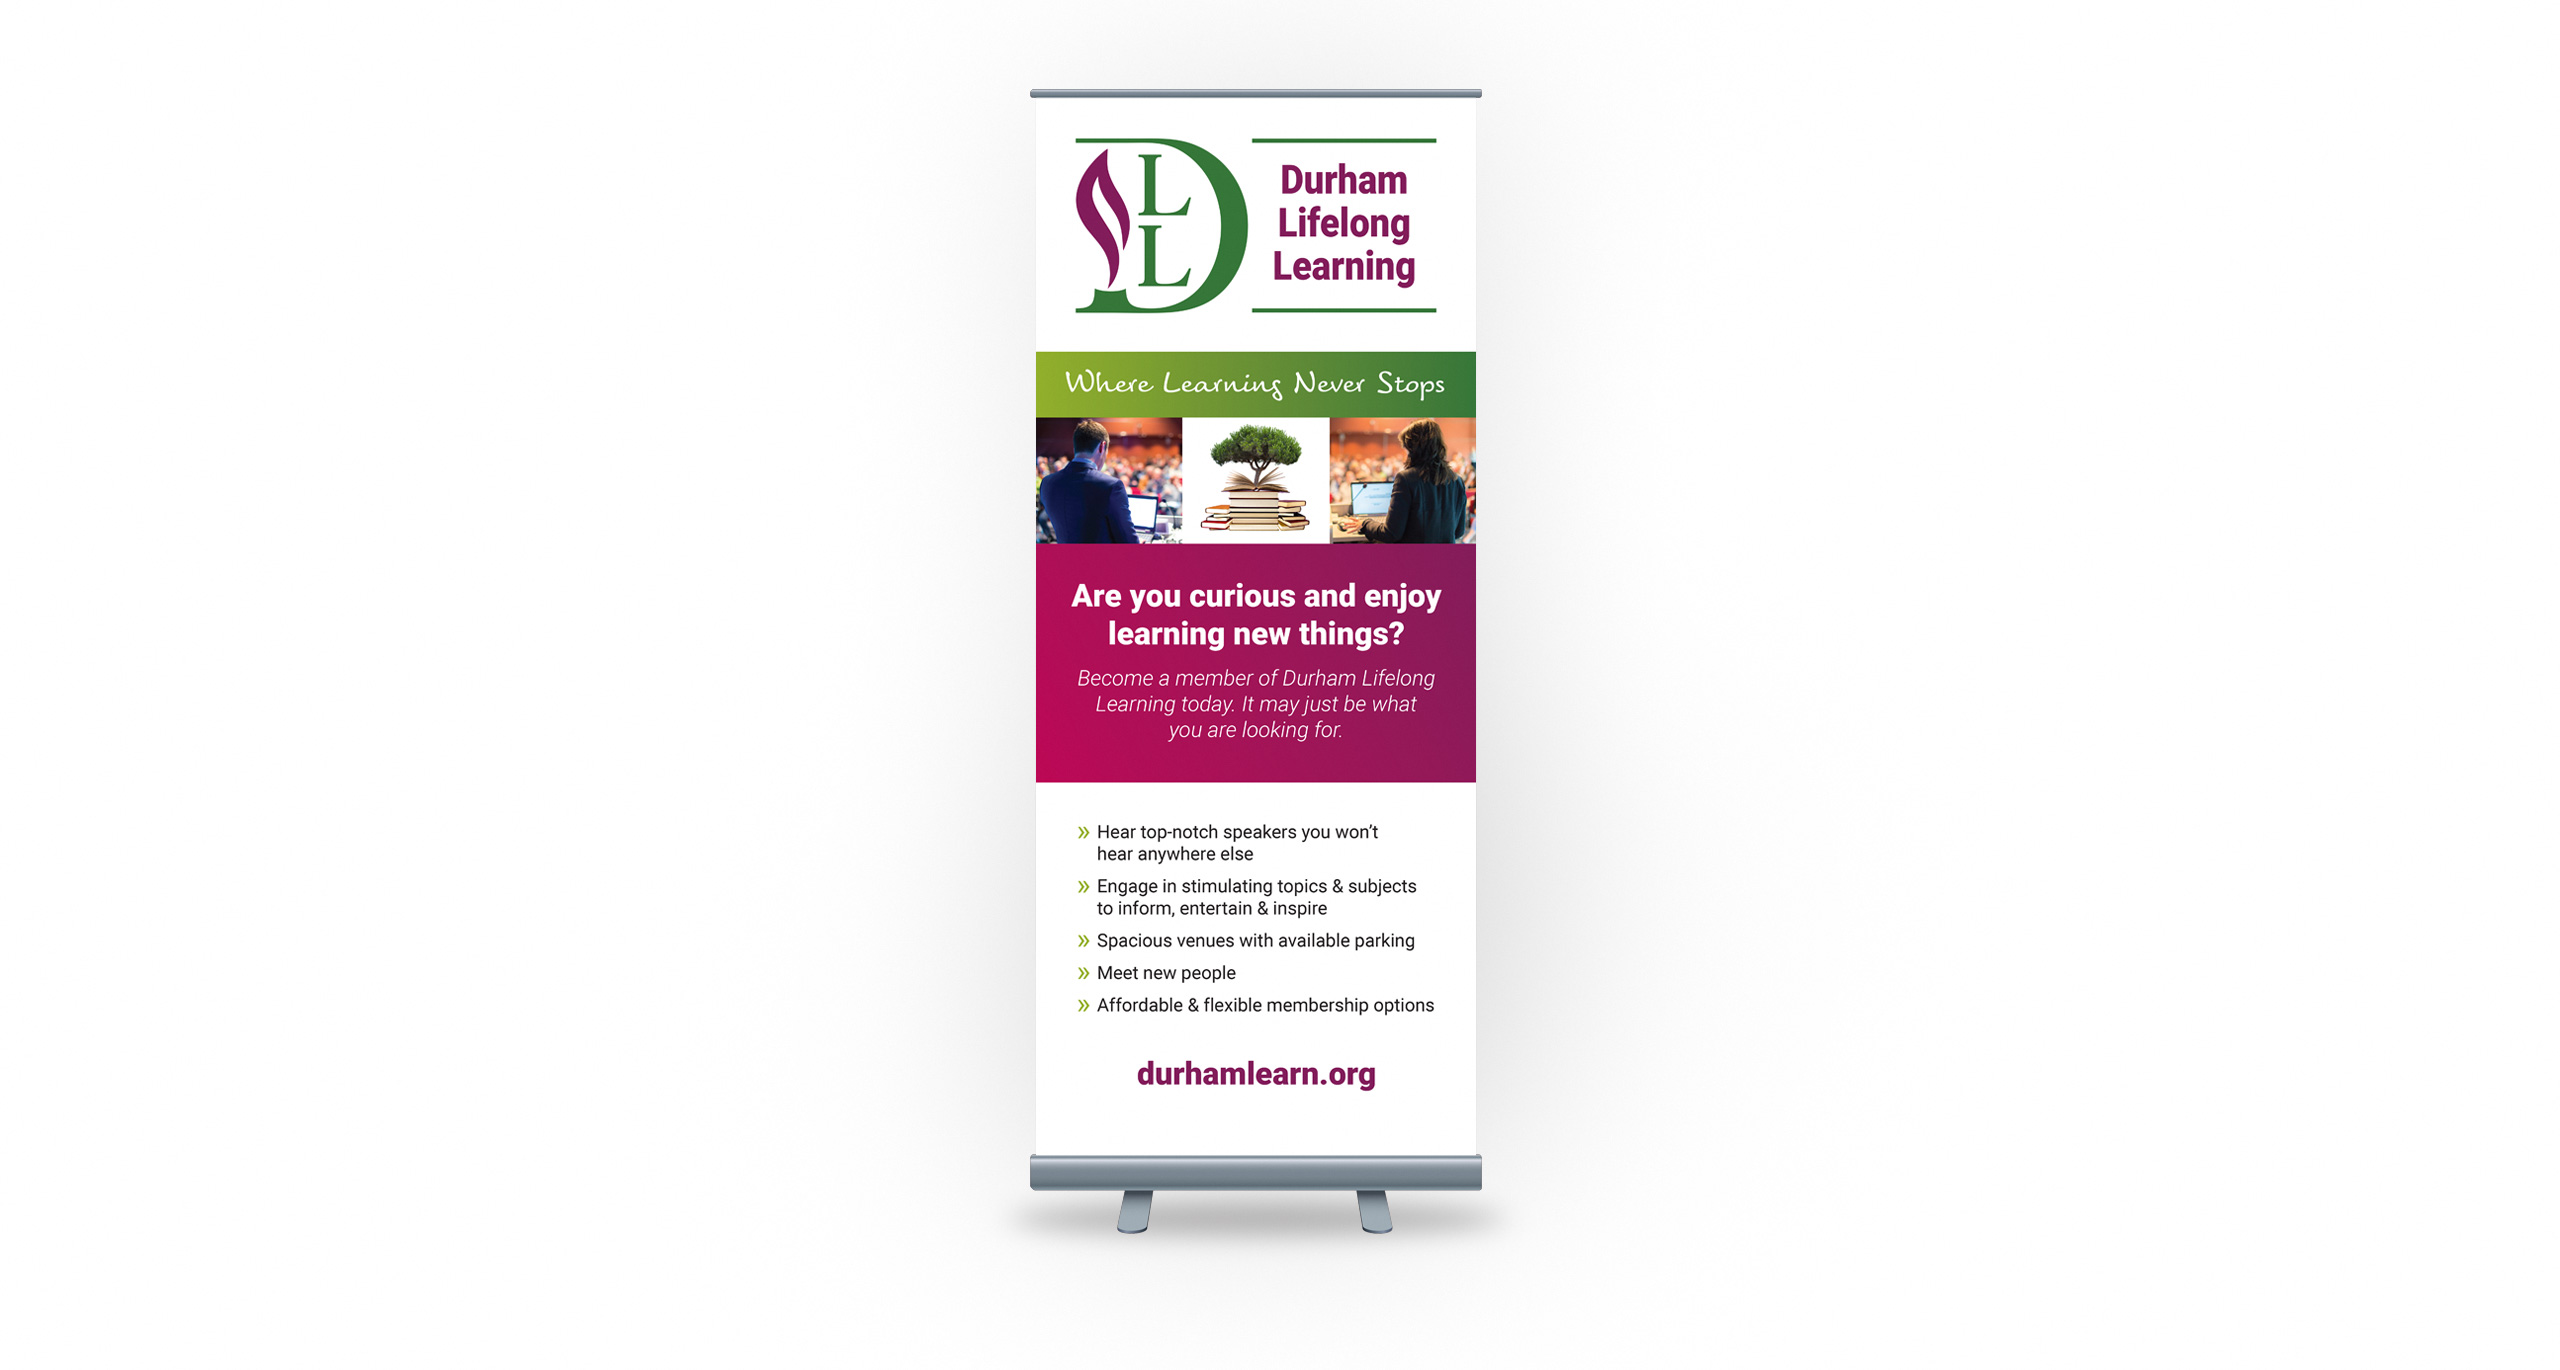 Pull-Up Display for Durham Lifelong Learning